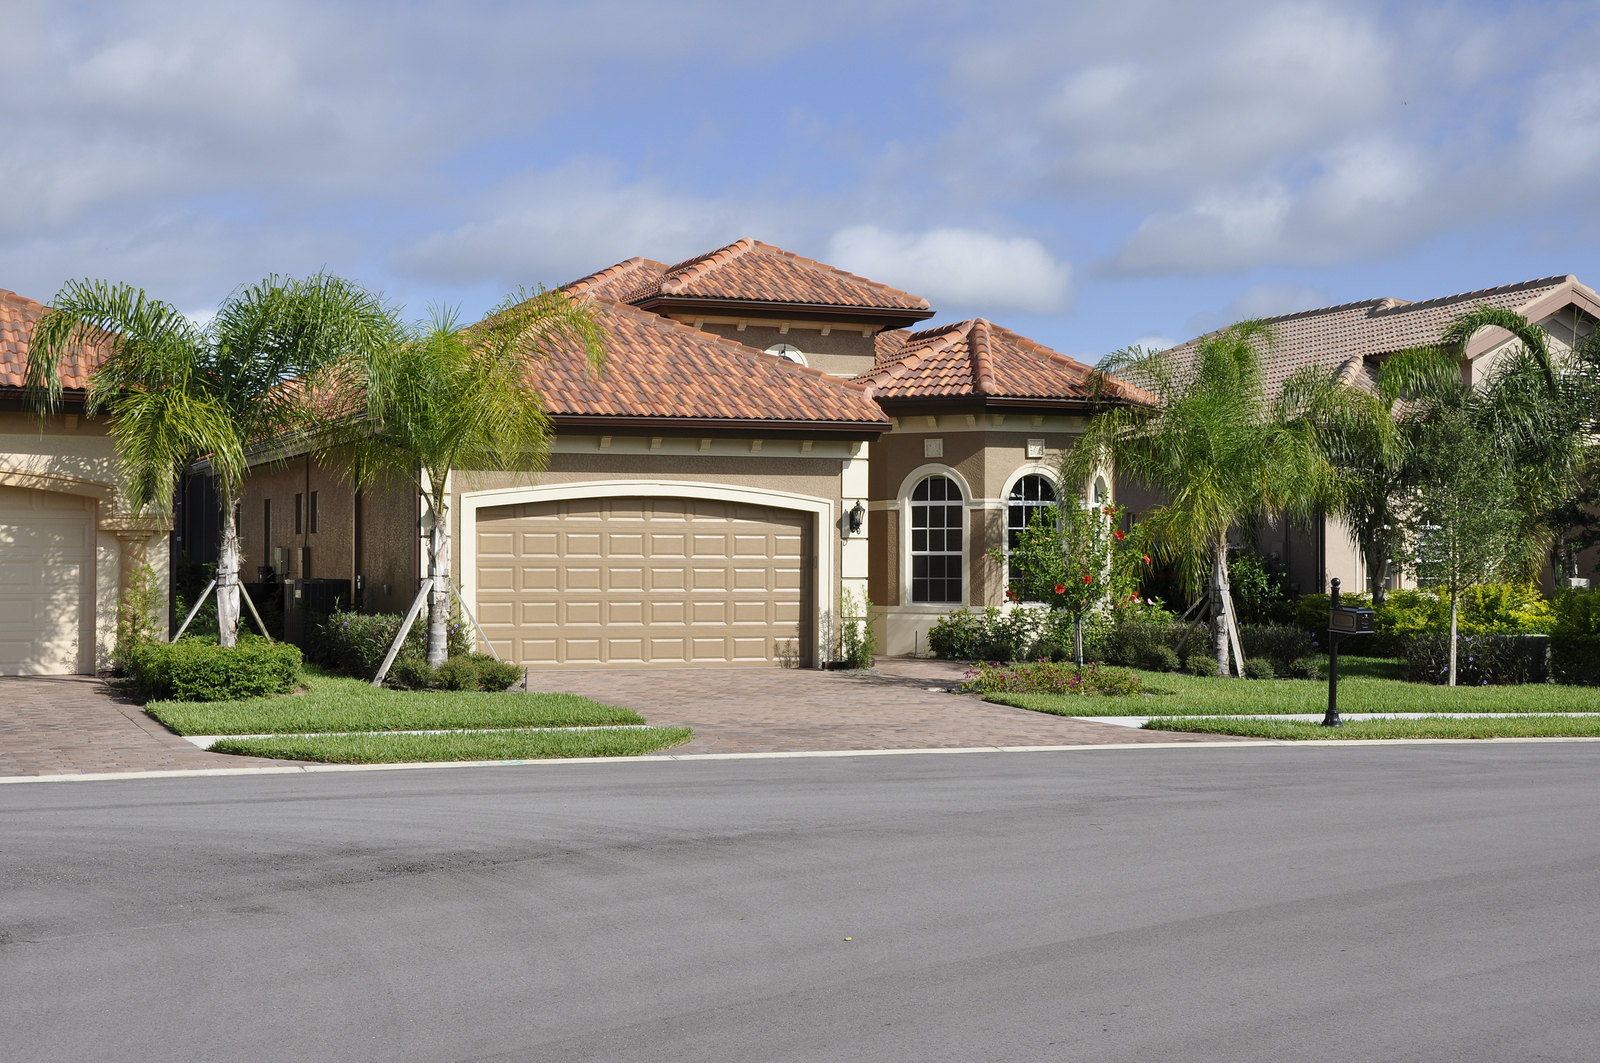 Typical Modern Home In Florida (View 5 of 8)